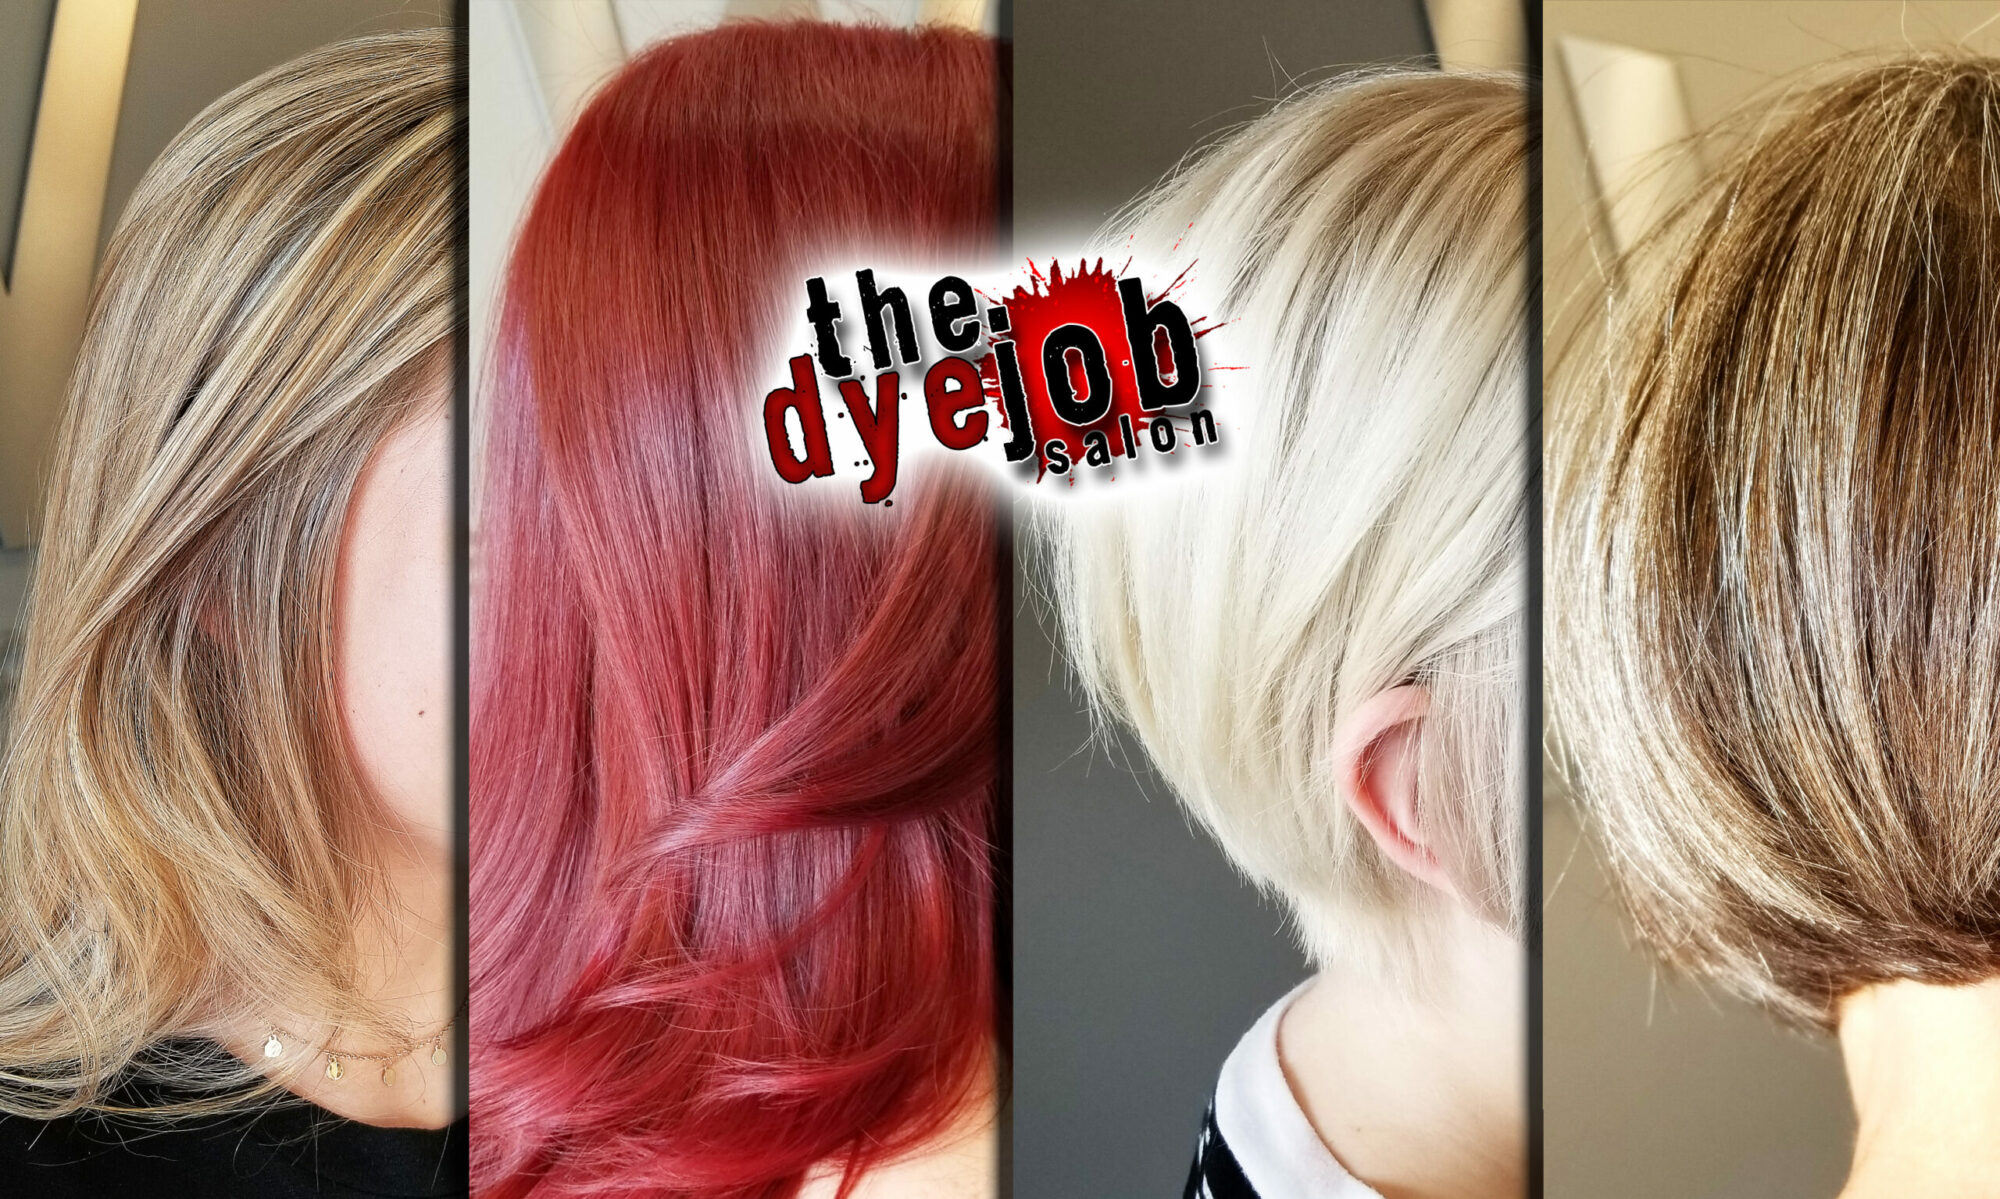 The Dye Job Salon